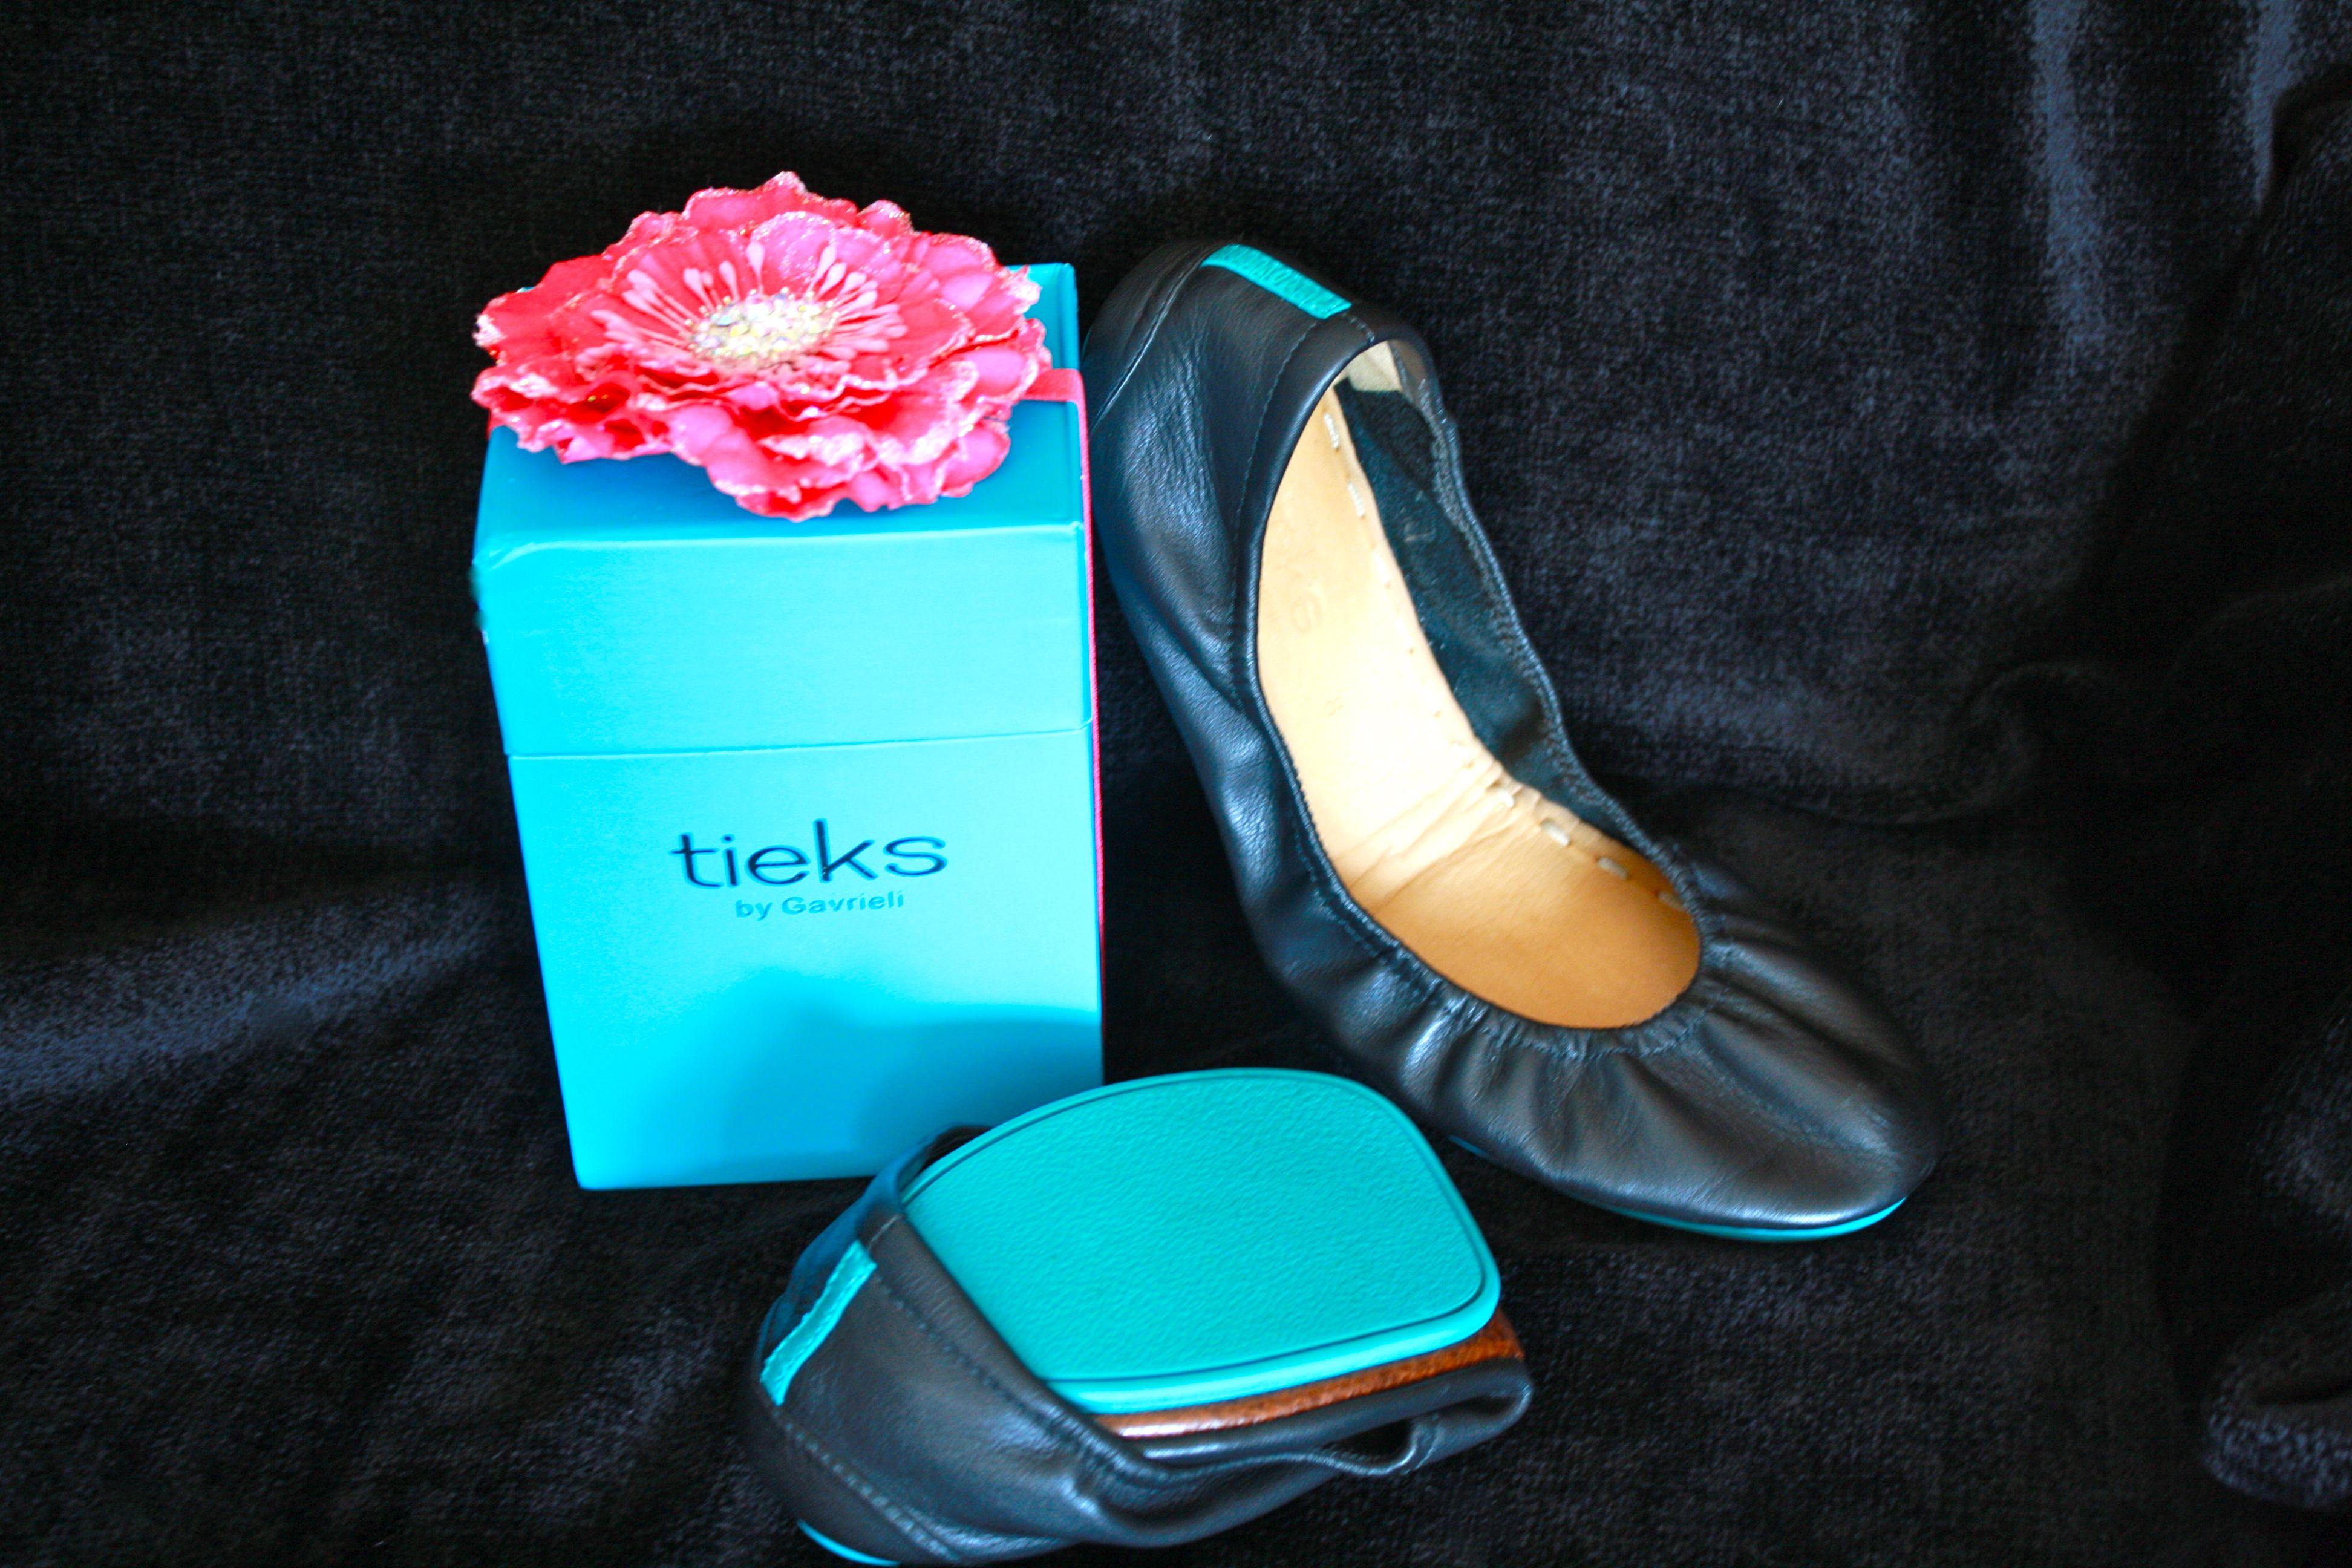 Tieks!  My favorite ballet flat, everyone should own a pair of these.